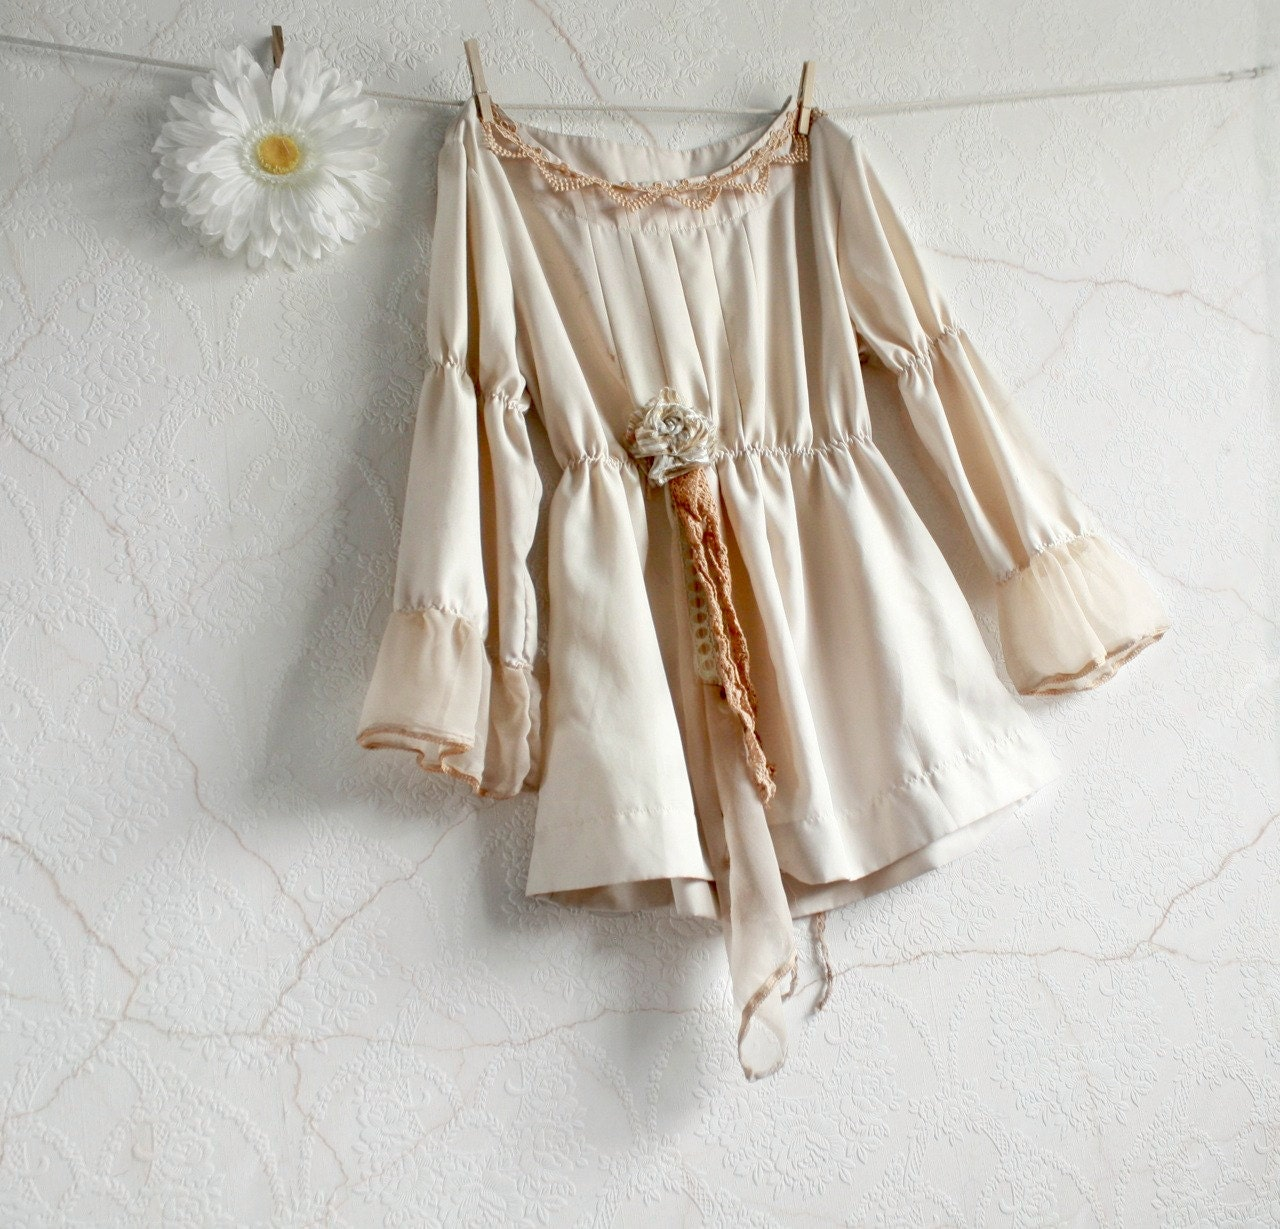 Cream blouse shabby chic clothing women 39 s shirt eco for Chambre style shabby chic